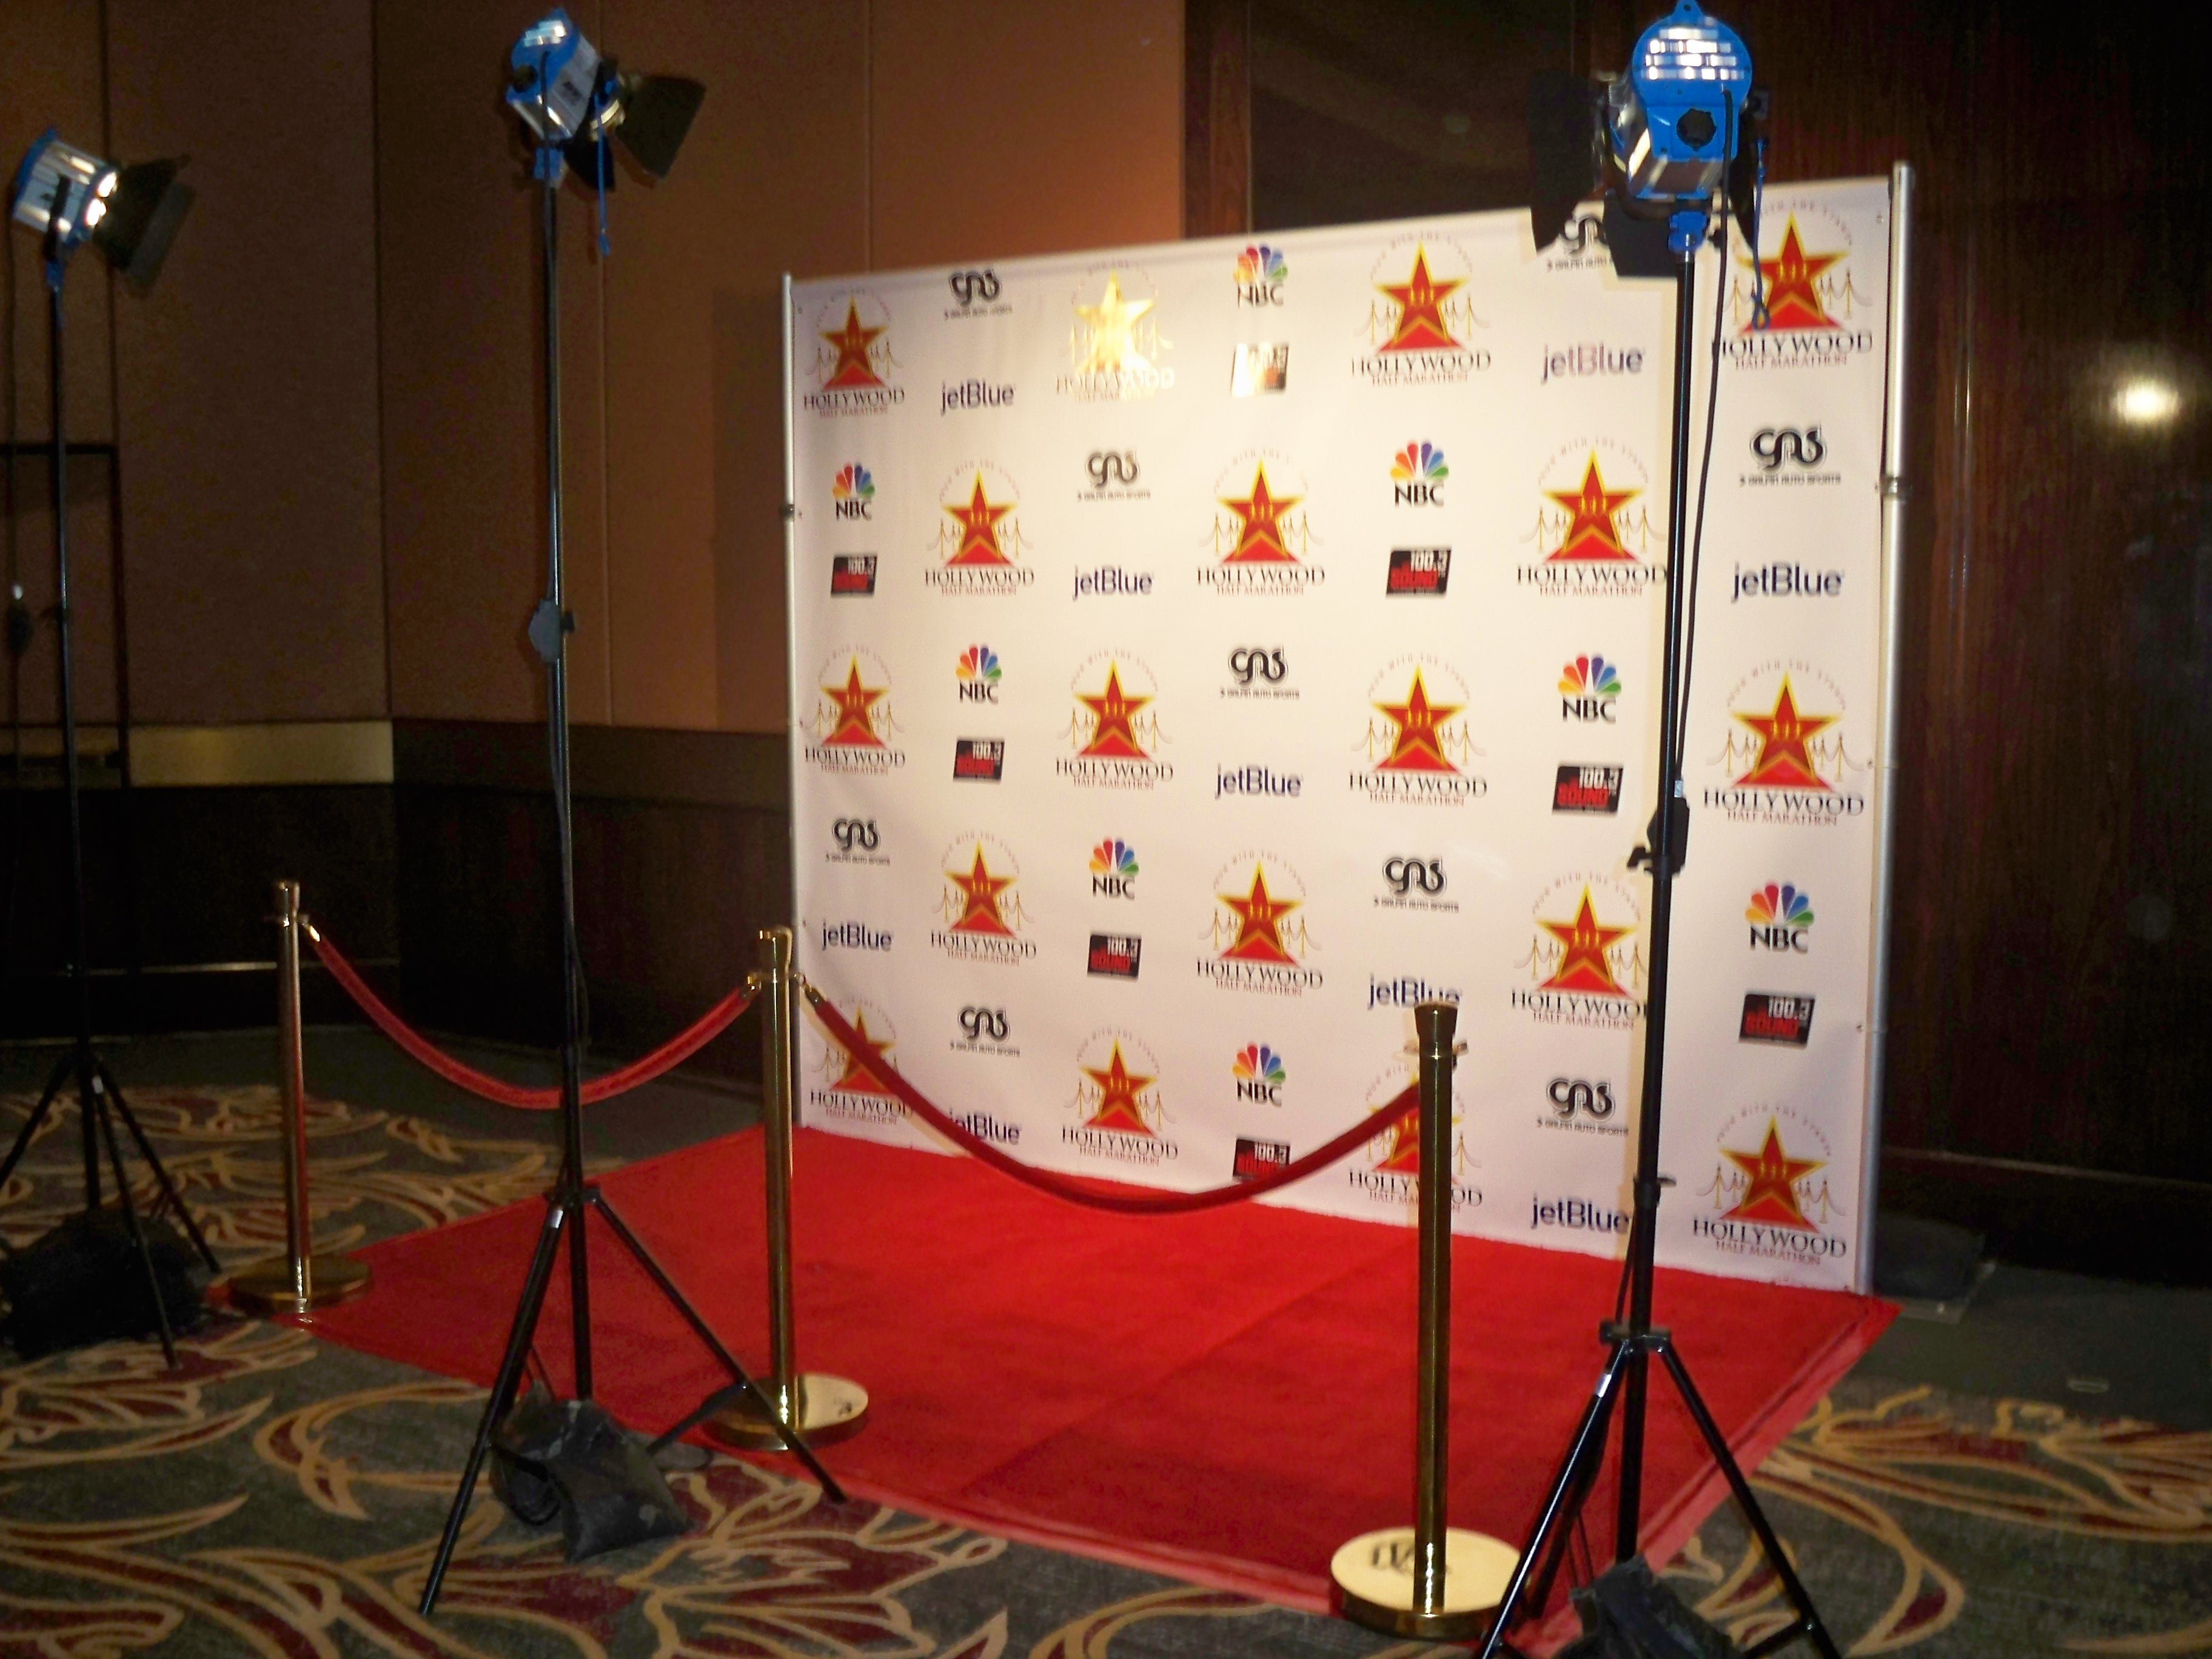 chair rentals in miami unusual desk photo booth | step and repeat red carpet lights a rivera event